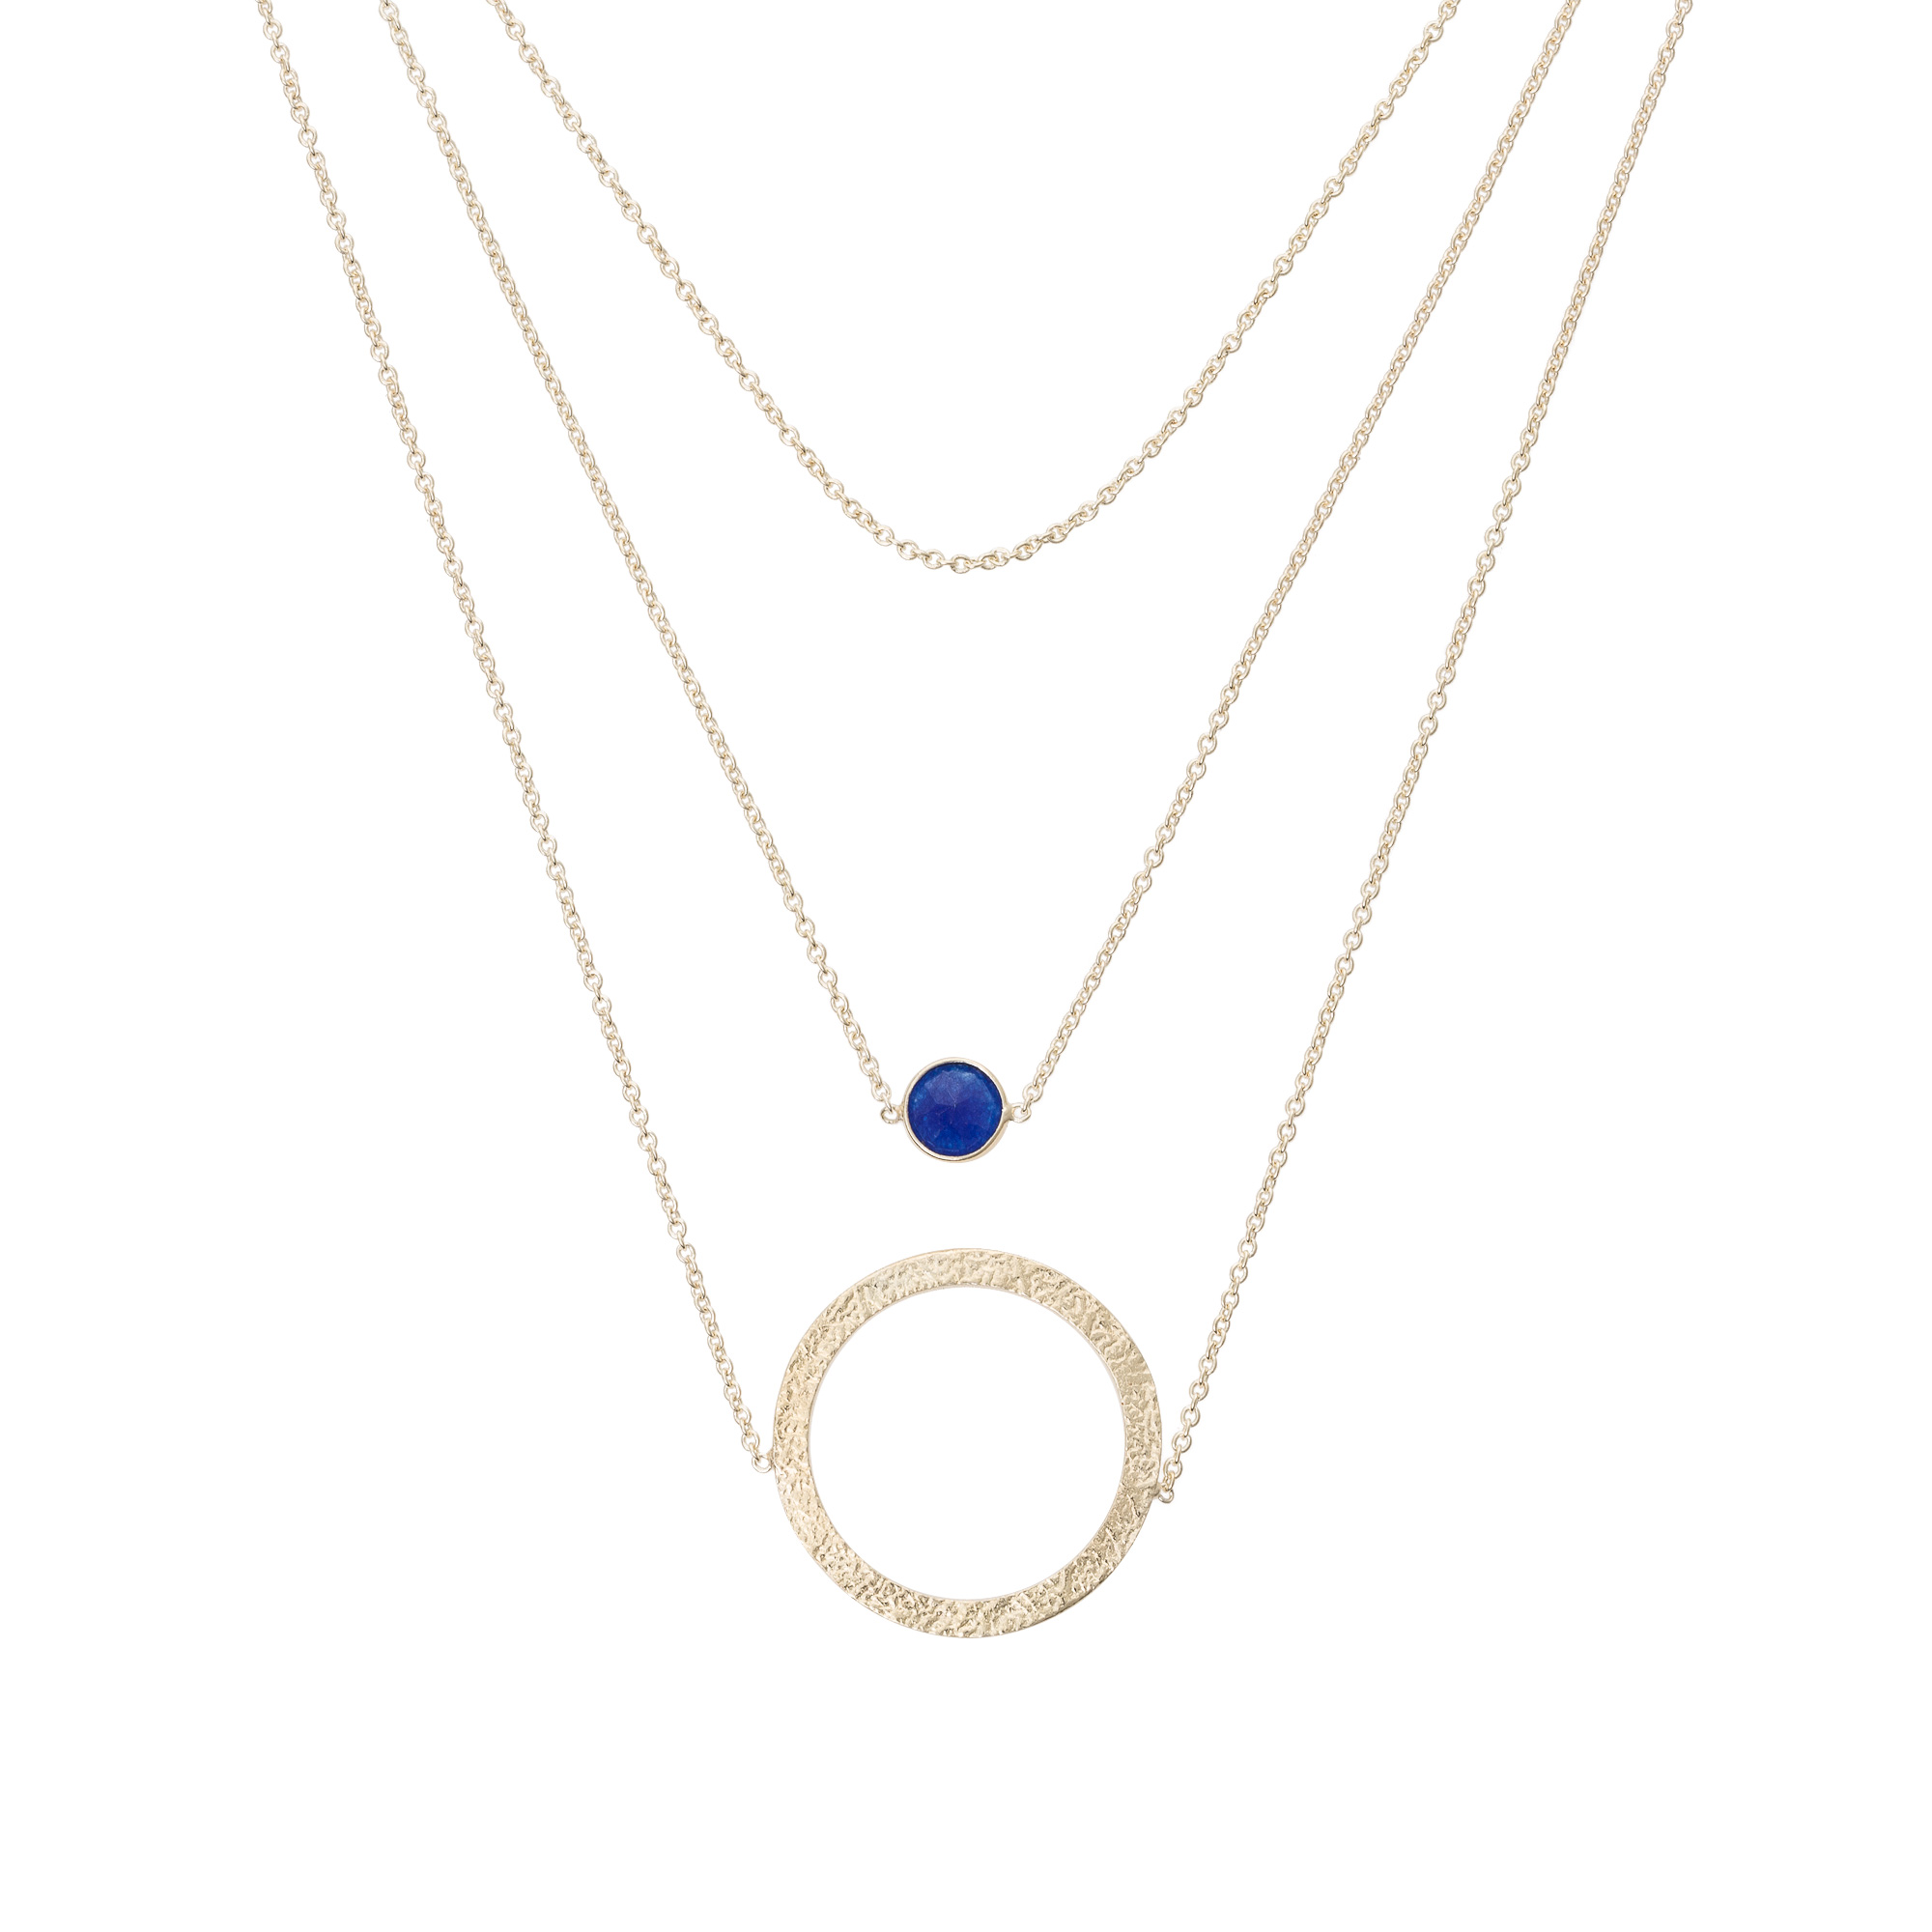 by metallic in schwartz multi abs jewelry allen necklace two gallery gunmetal lyst row tone gold